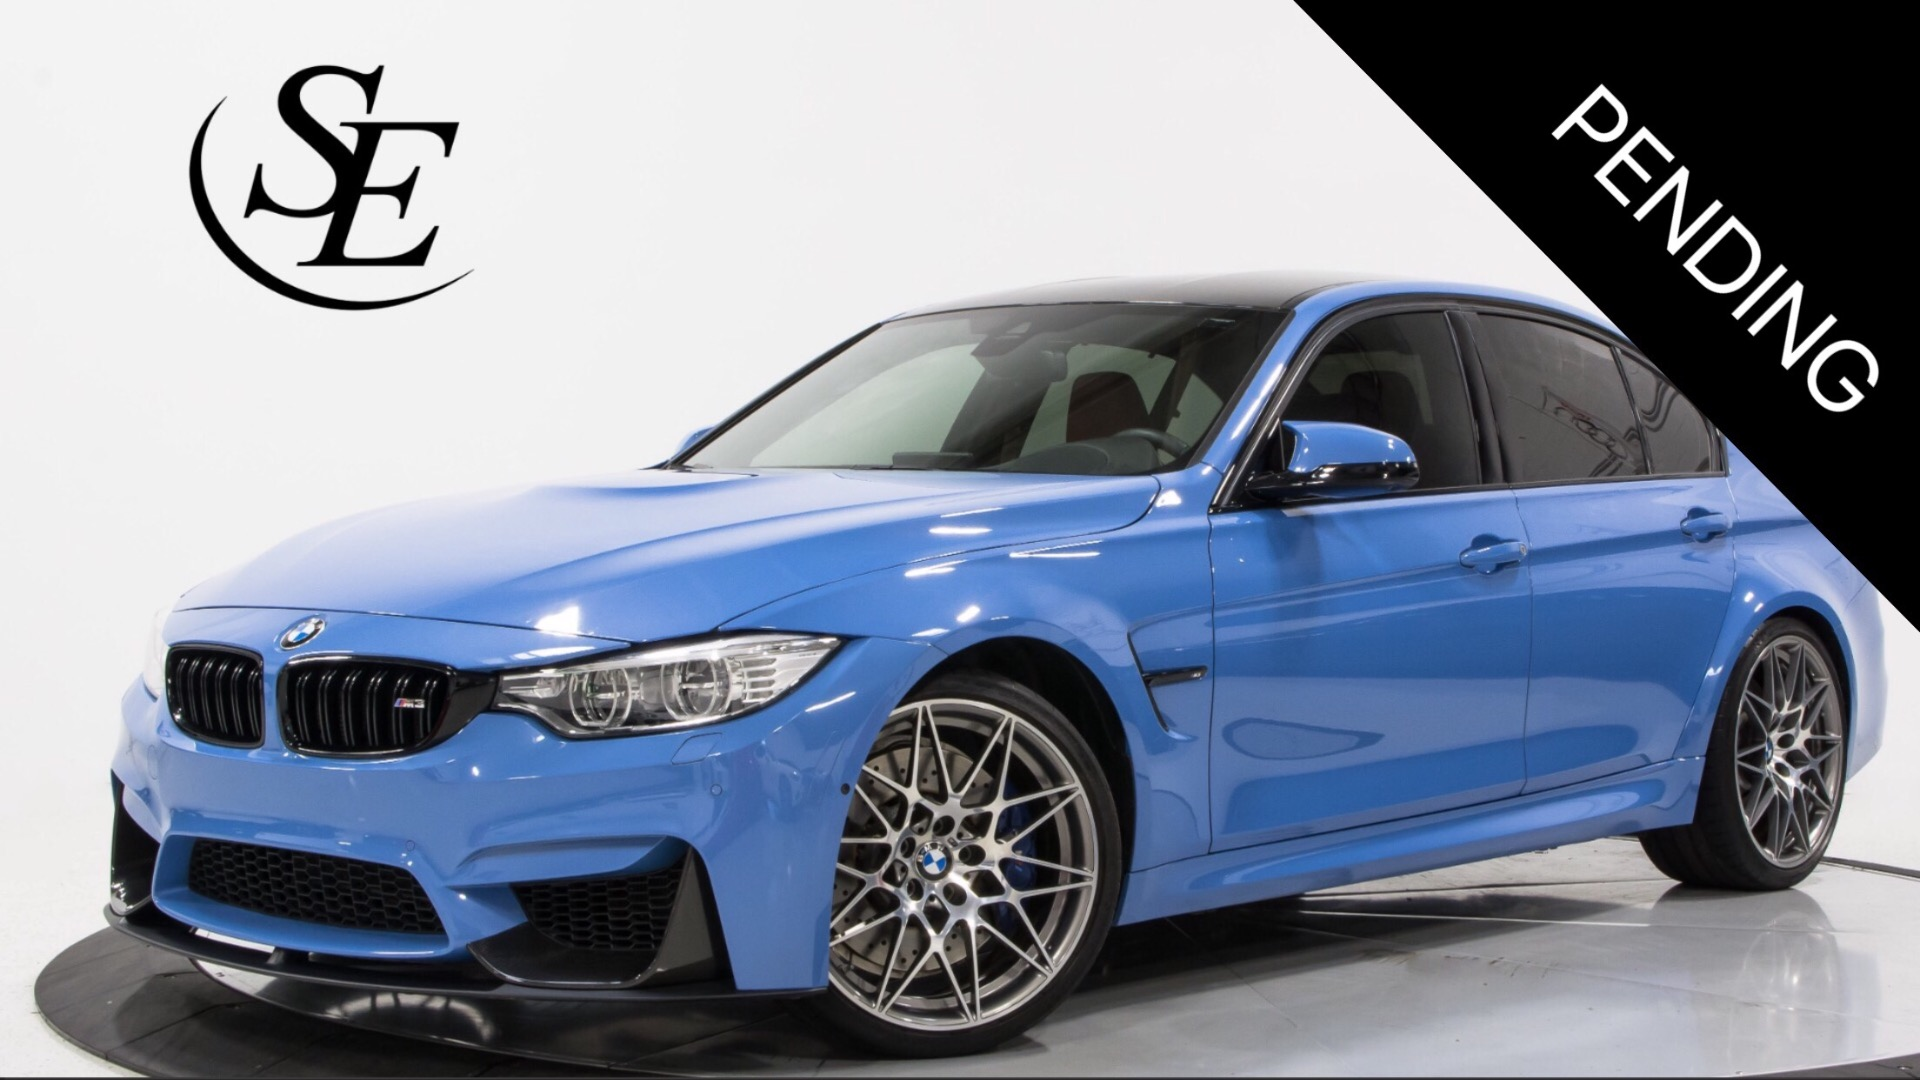 2017 Bmw M3 Sedan Competition Pkg Stock 22609 For Sale Near Pompano Beach Fl Fl Bmw Dealer